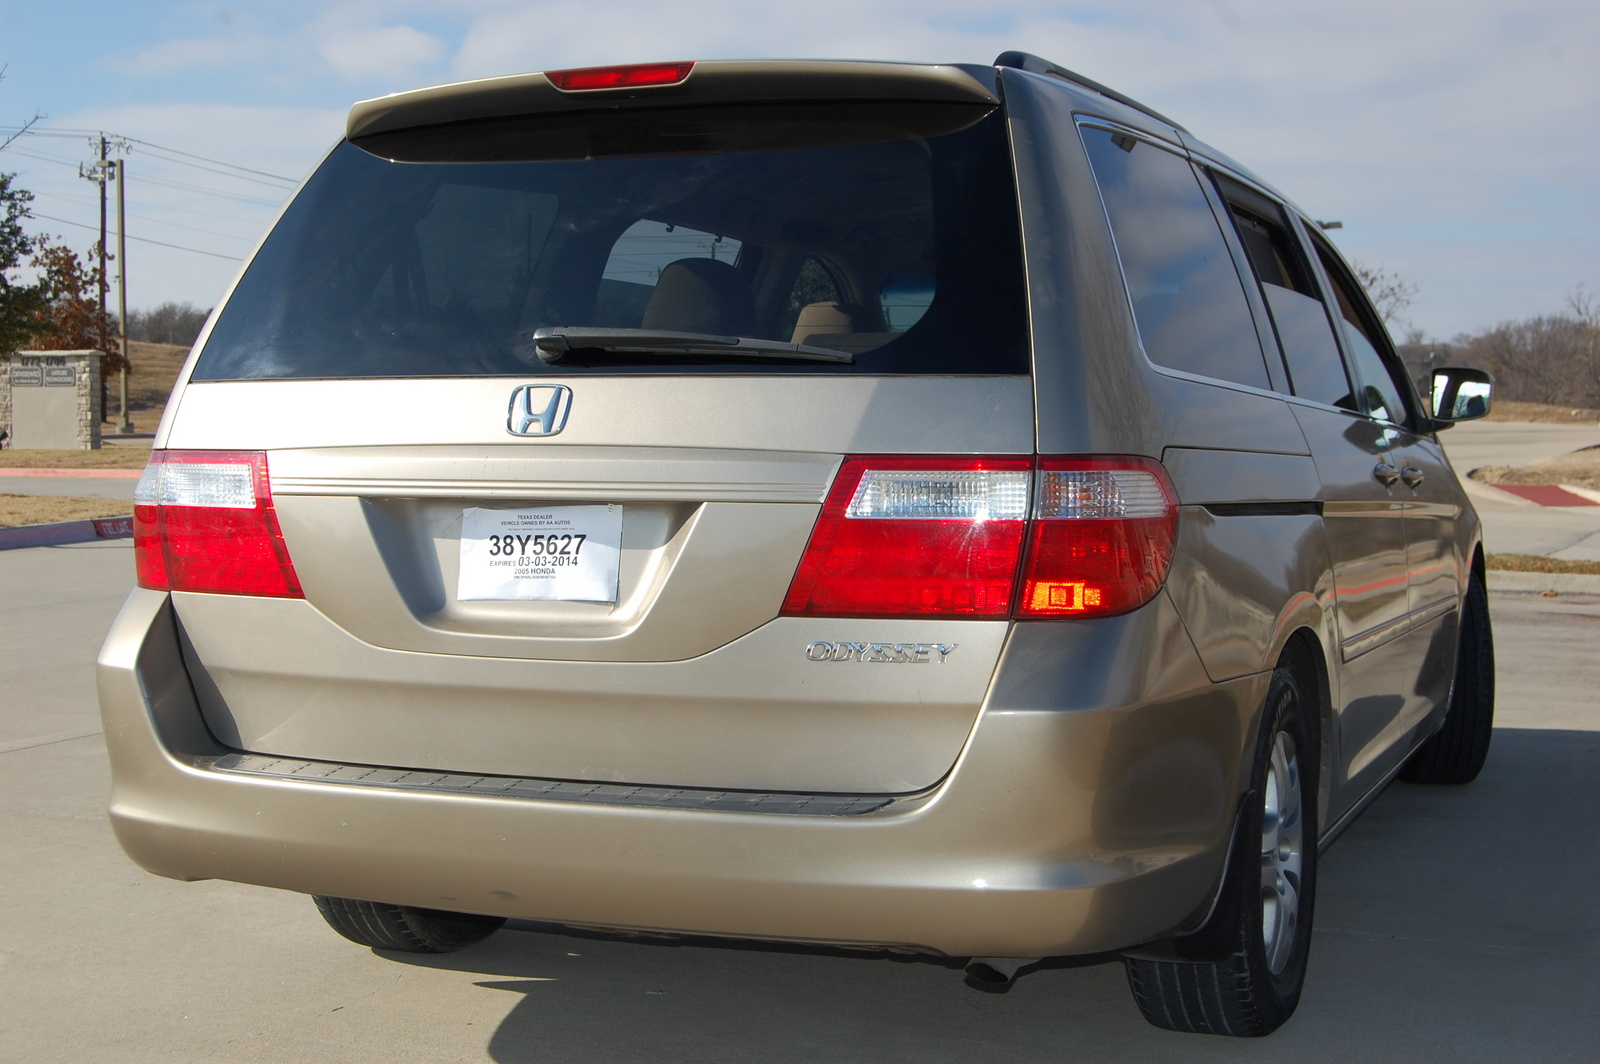 2014 honda pilot specifications official honda site for 2014 honda pilot dimensions